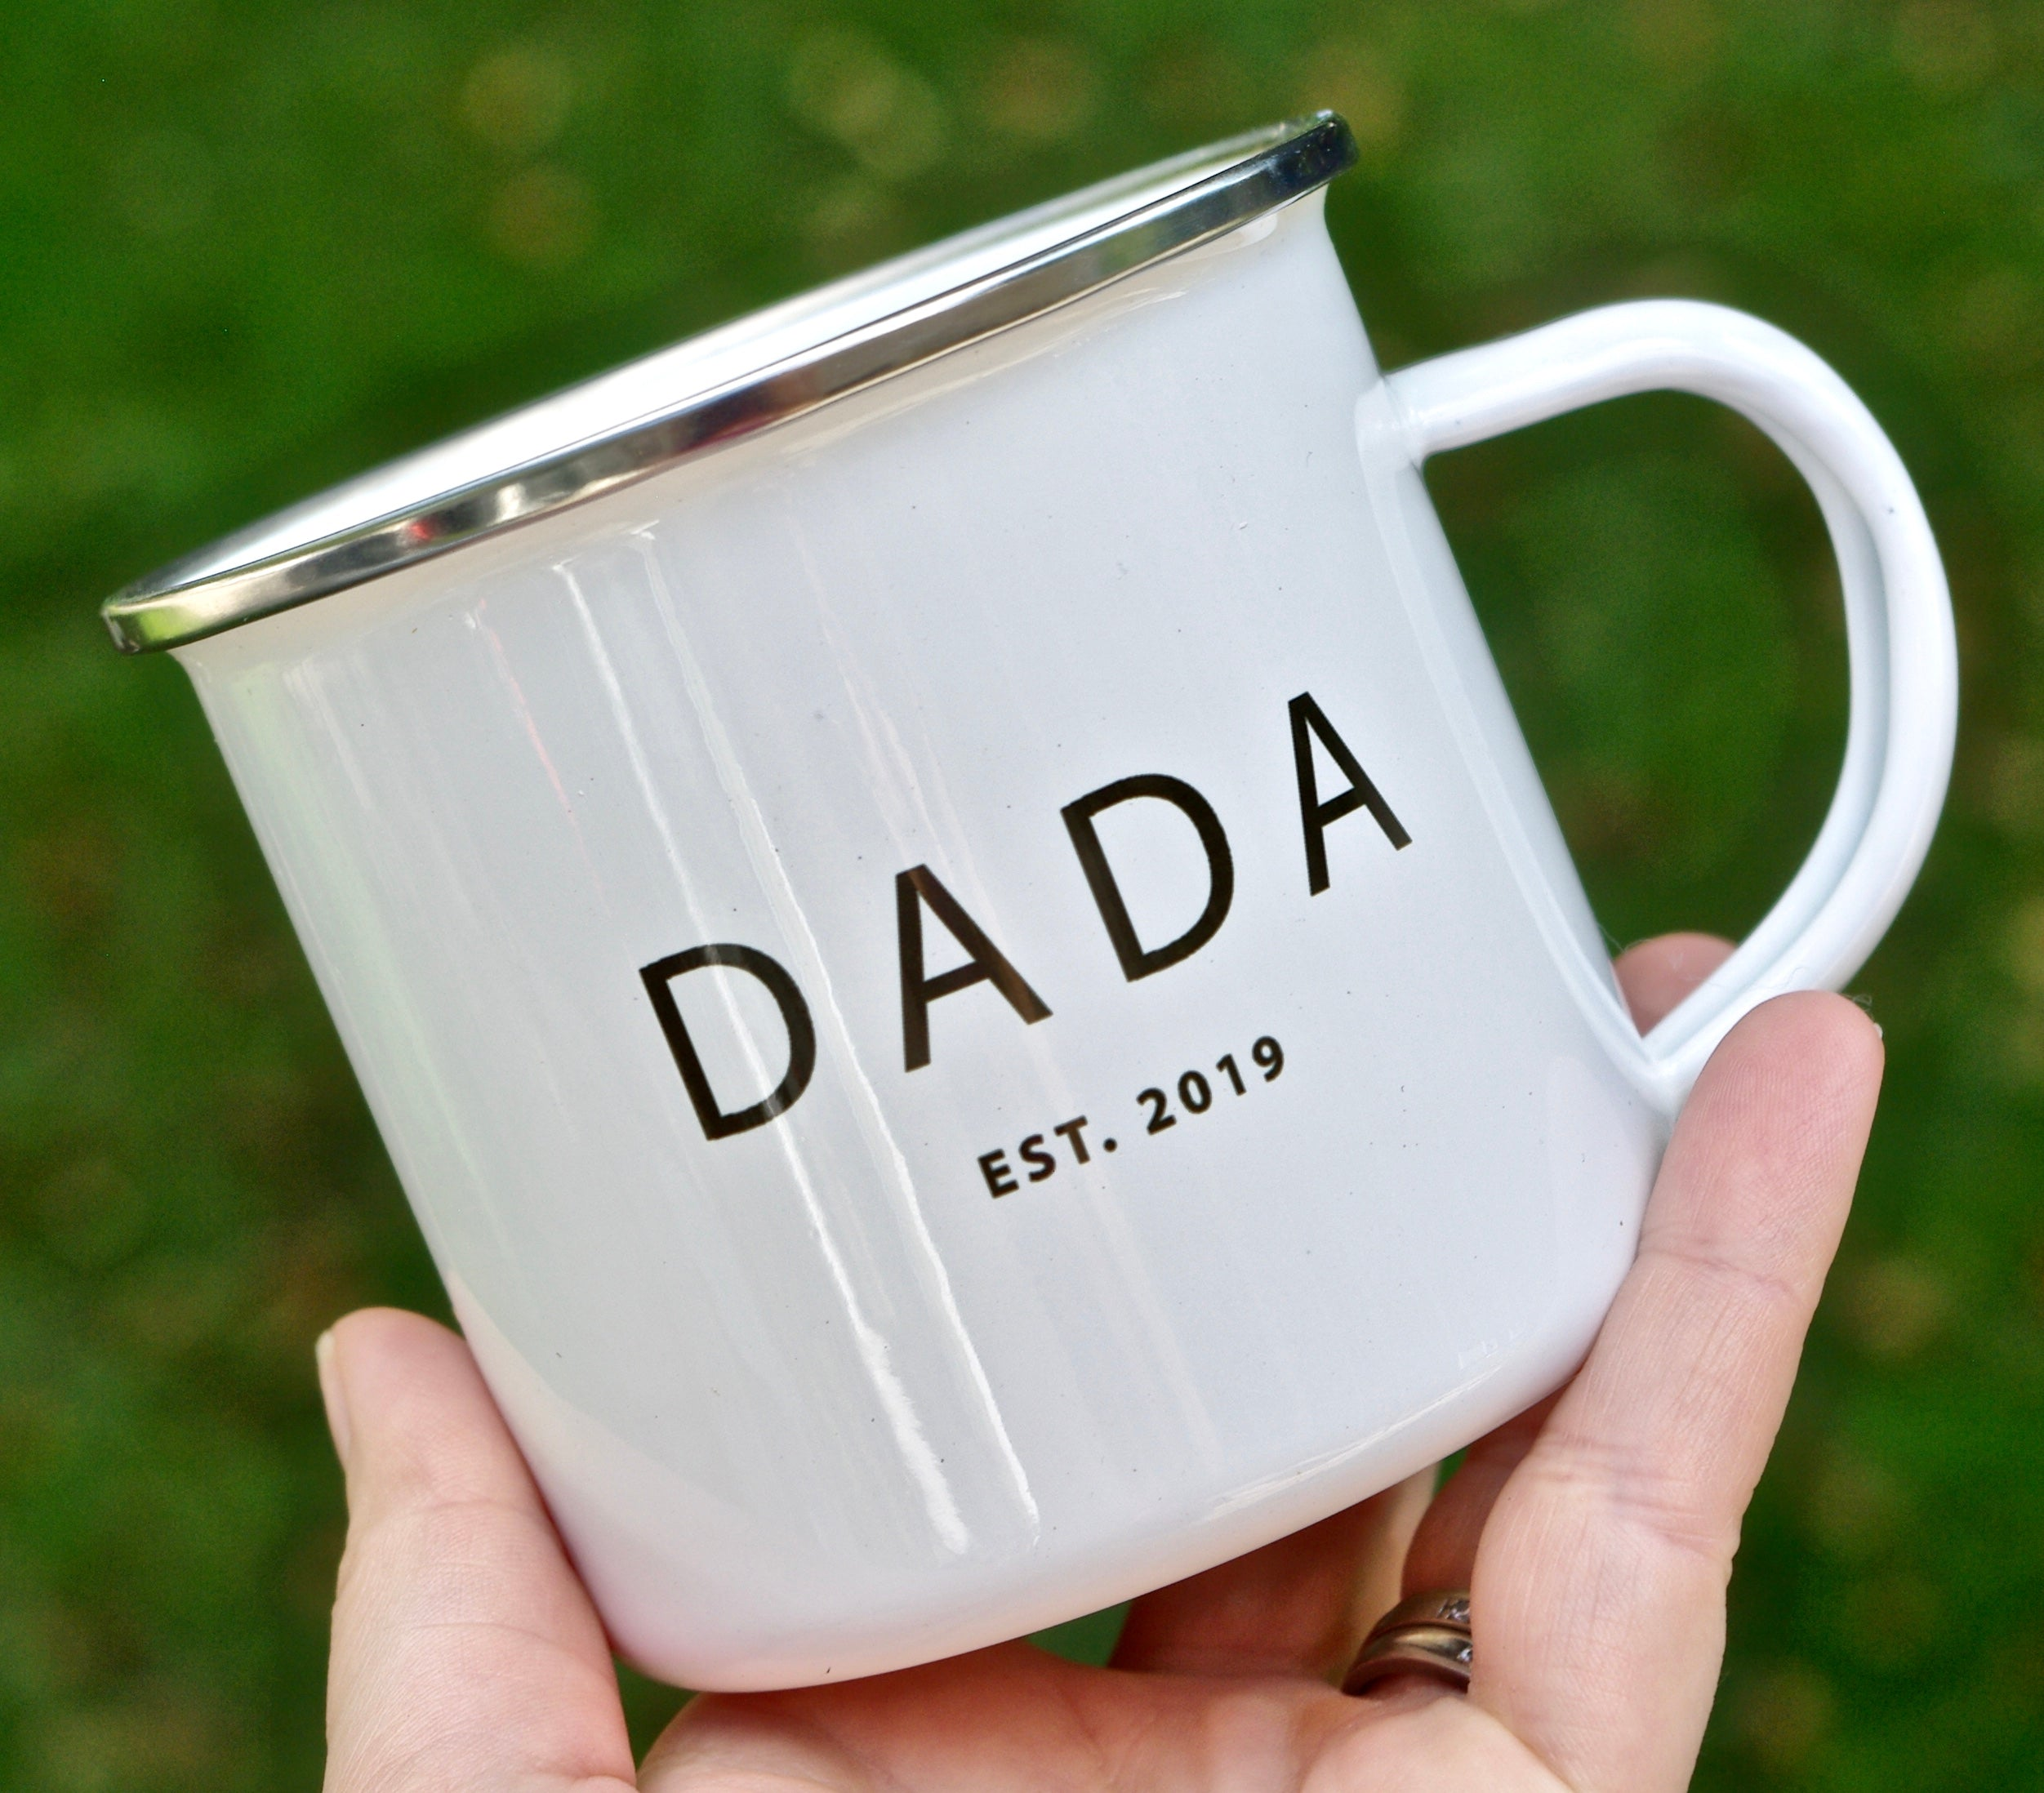 personalized gift for dad personalized dad mug new dad mug new dad gifts from mum new dad gift basket canada